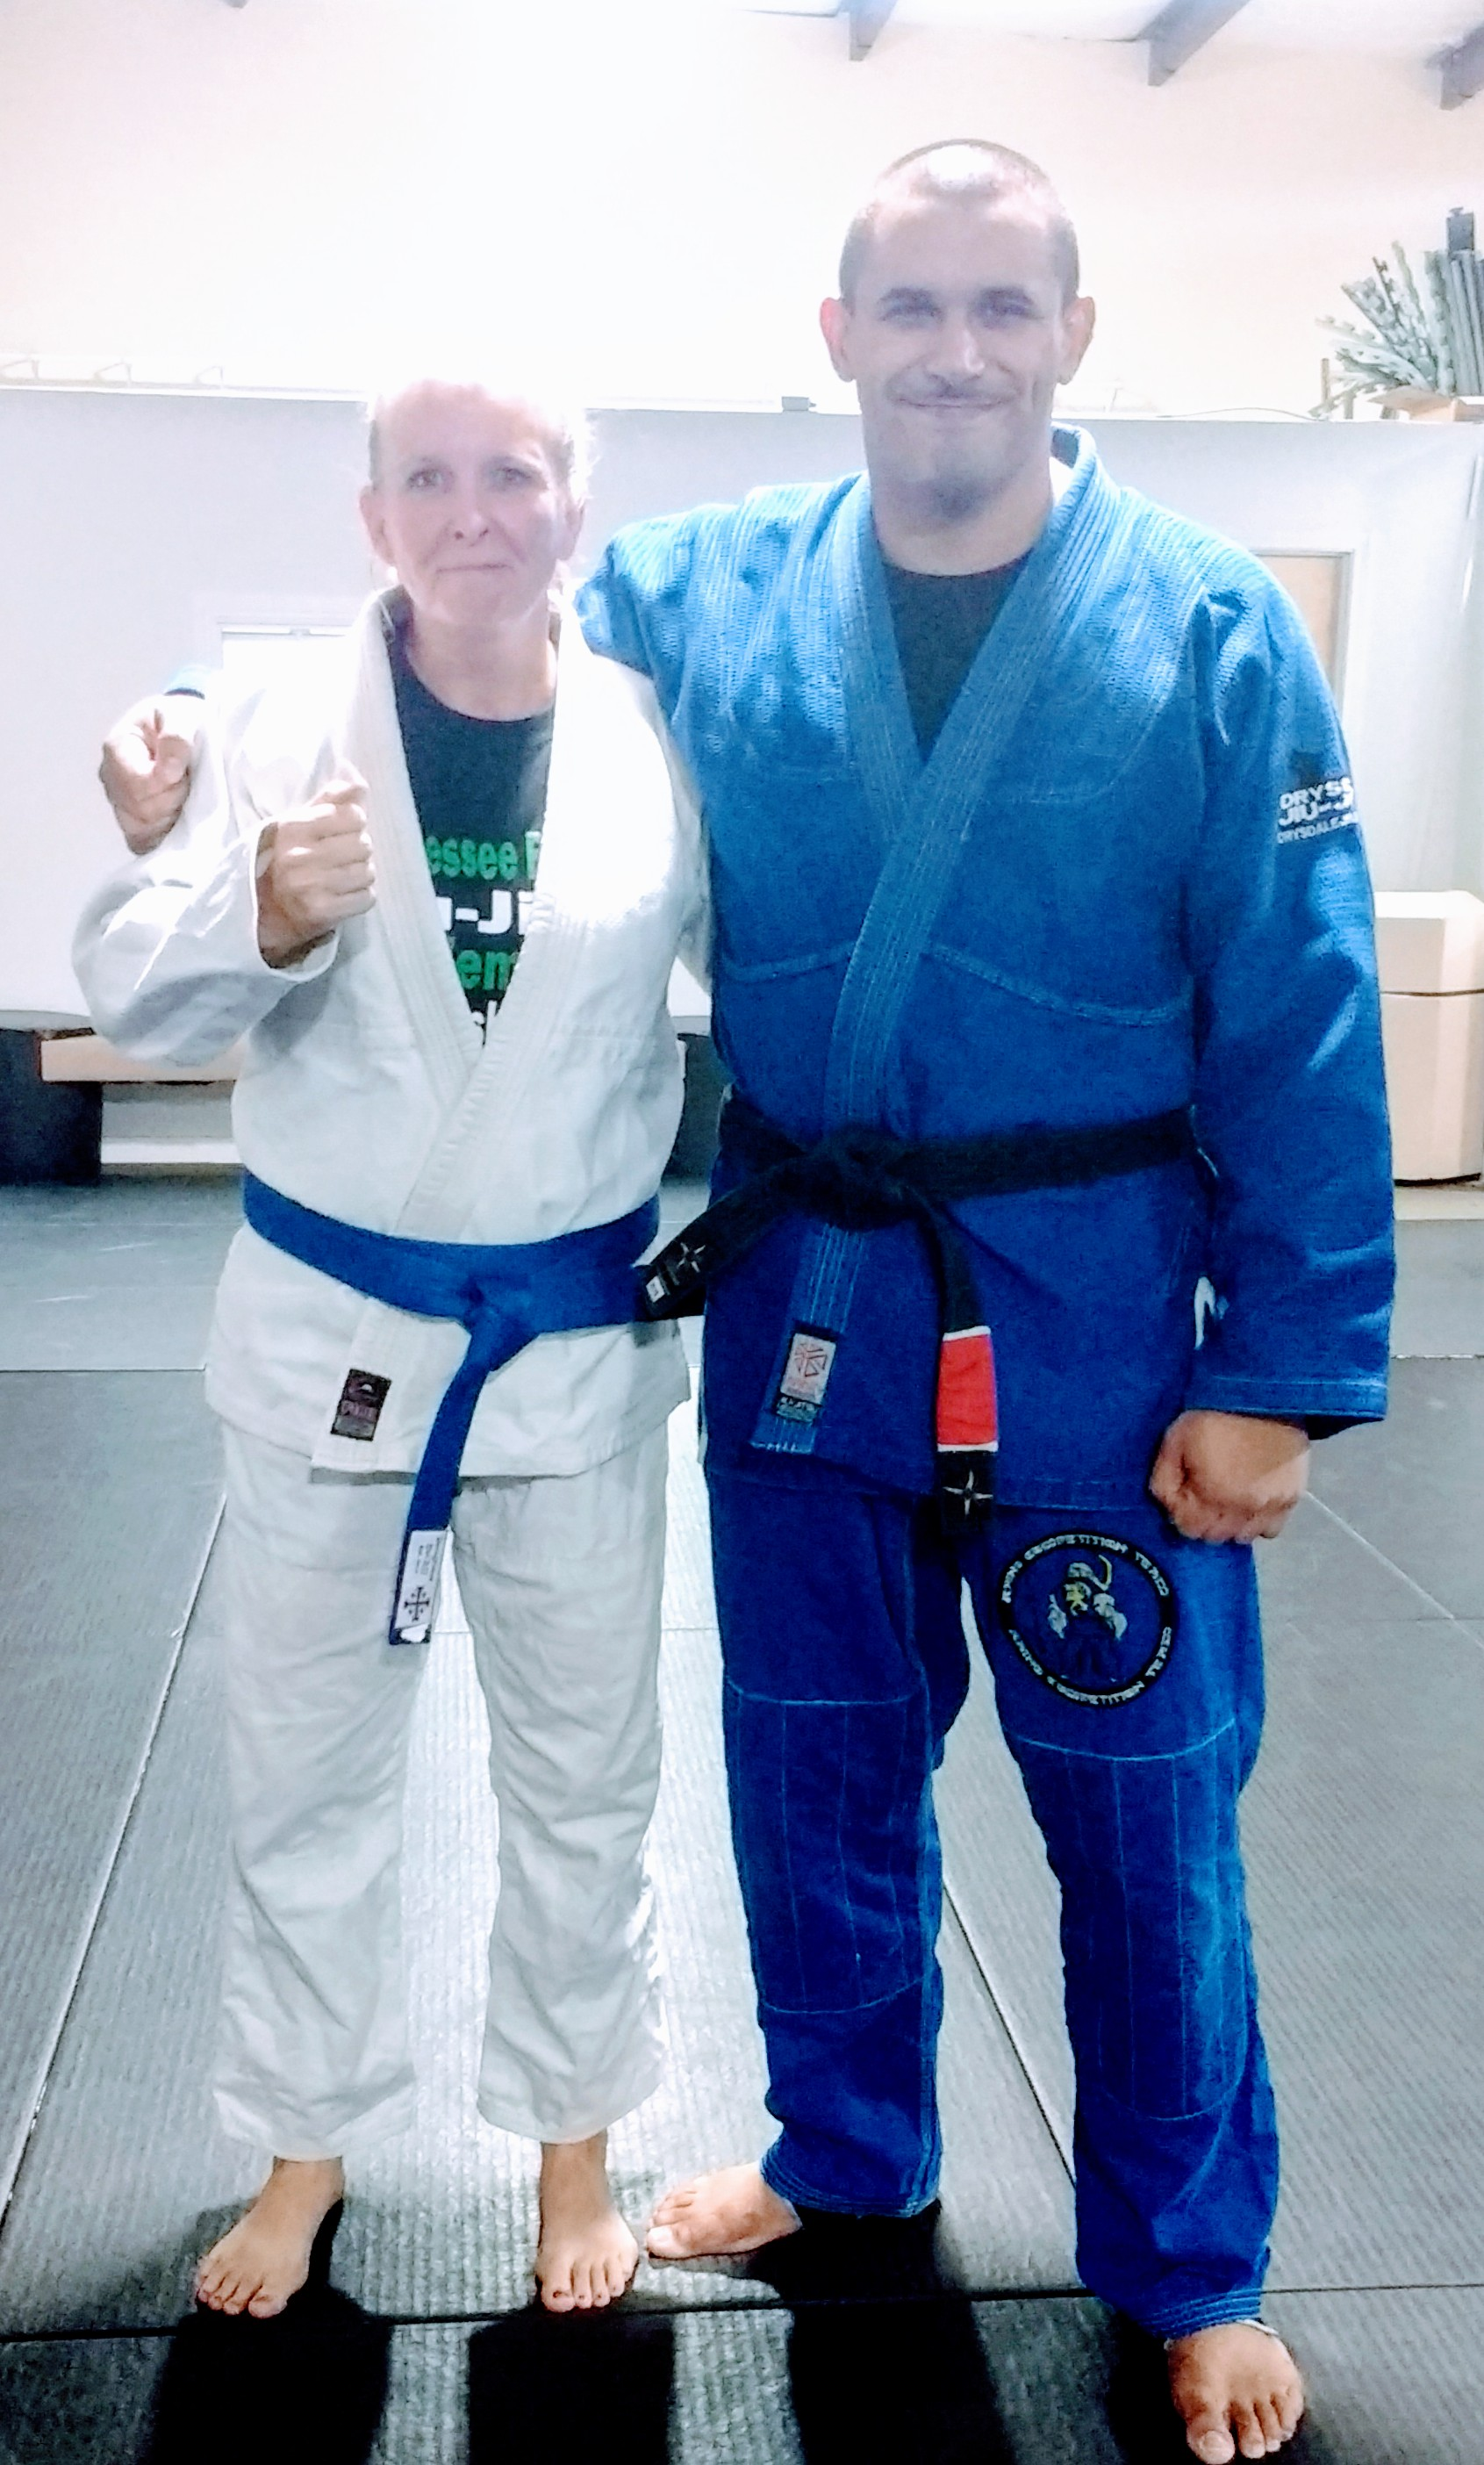 Miss Kitty to Blue Belt